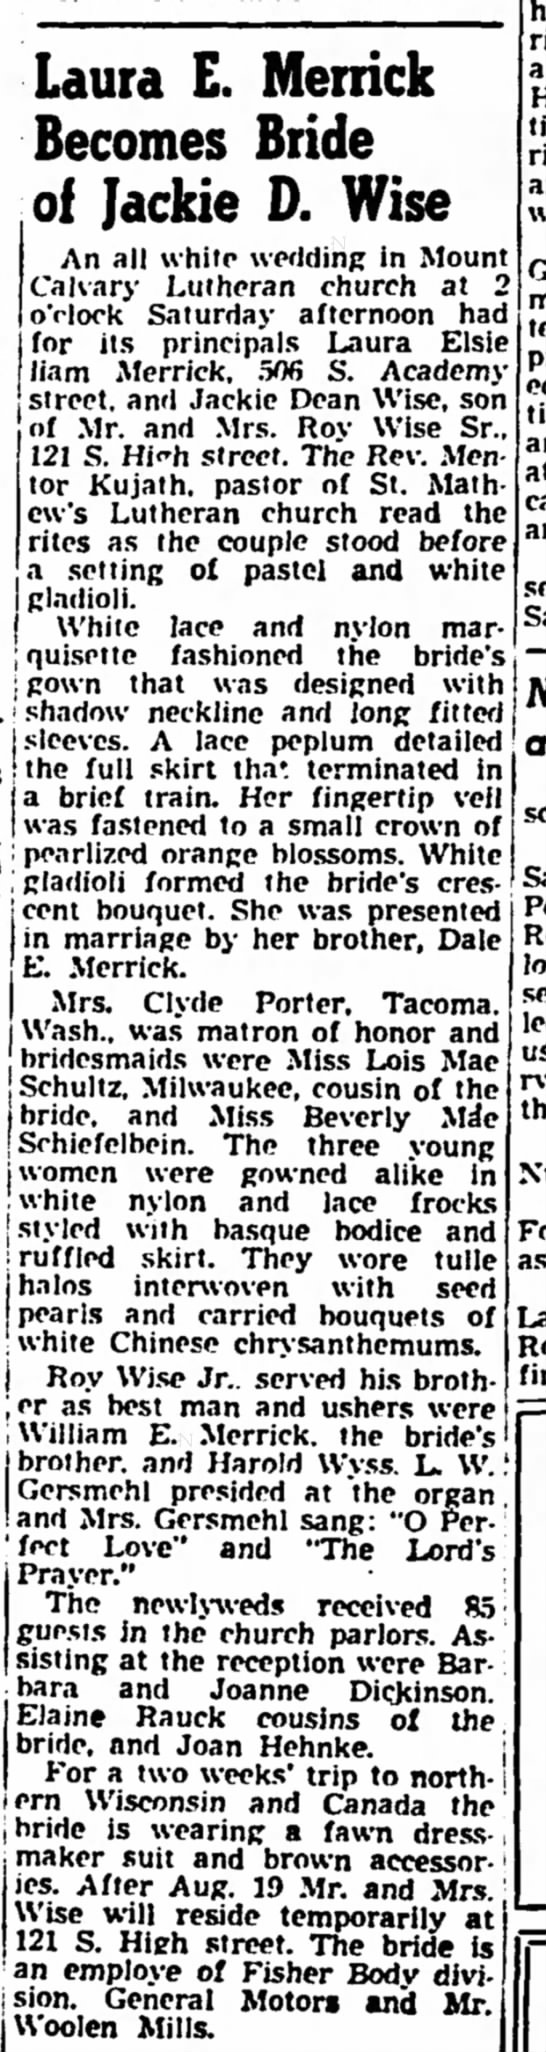 Laura E. Merrick Janesville, WI 5 Aug 1950